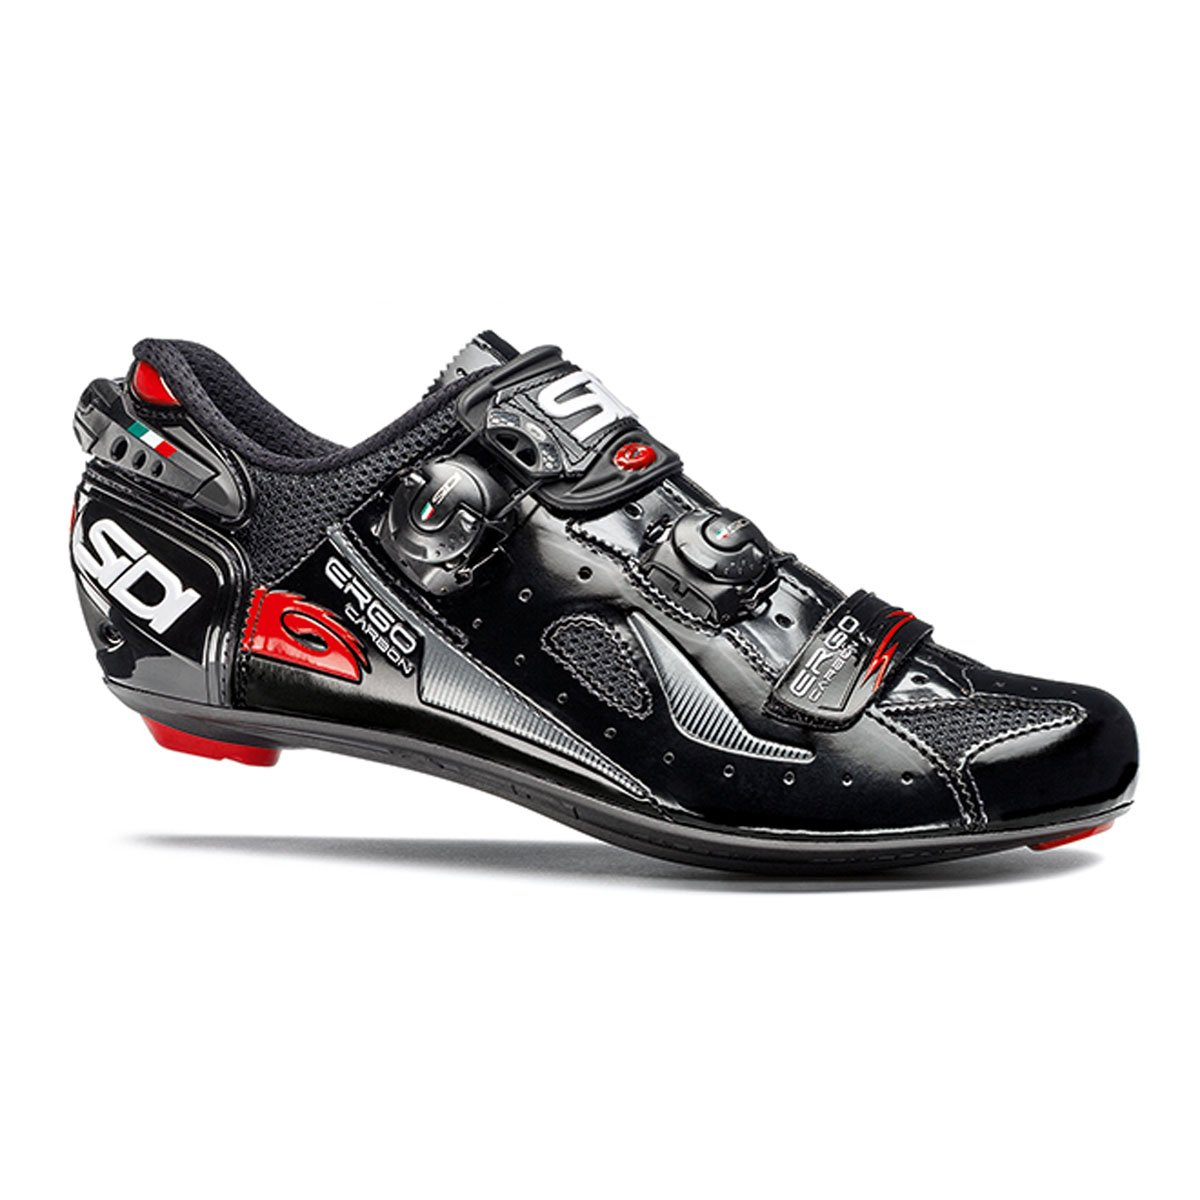 Black 40 Sidi Men's Ergo 4 Cycling shoes Black (44.5)